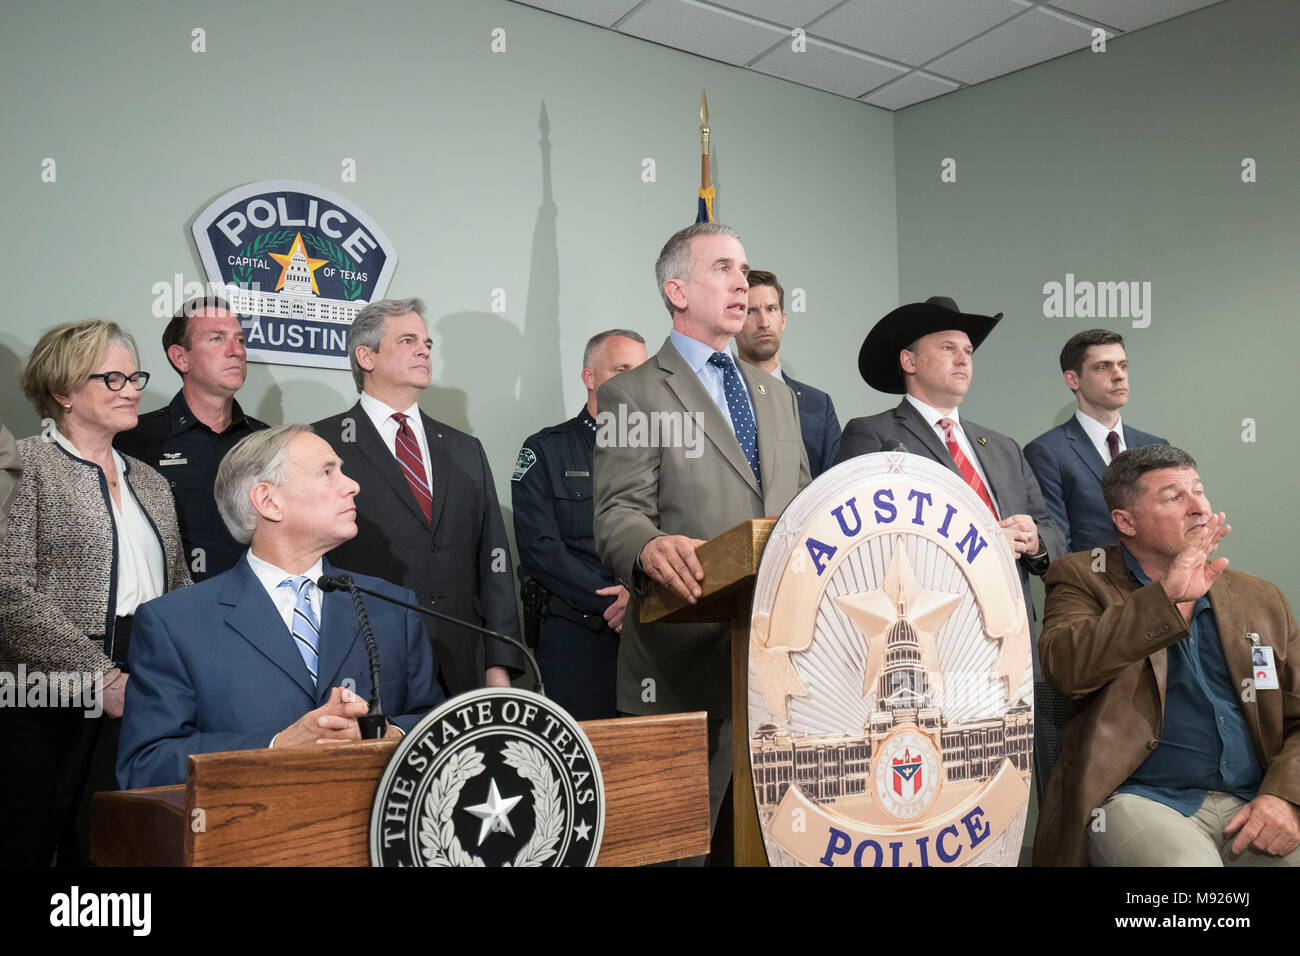 Bureau of Alcohol, Tobacco and Firearms Special Agent in Charge Fred Milanowski answers questions at a press conference with Texas Gov. Greg Abbott (seated at left) and others who assisted in finding alleged Austin serial bomber Mark A. Conditt. Conditt killed himself as police closed in on him on March 21. - Stock Image